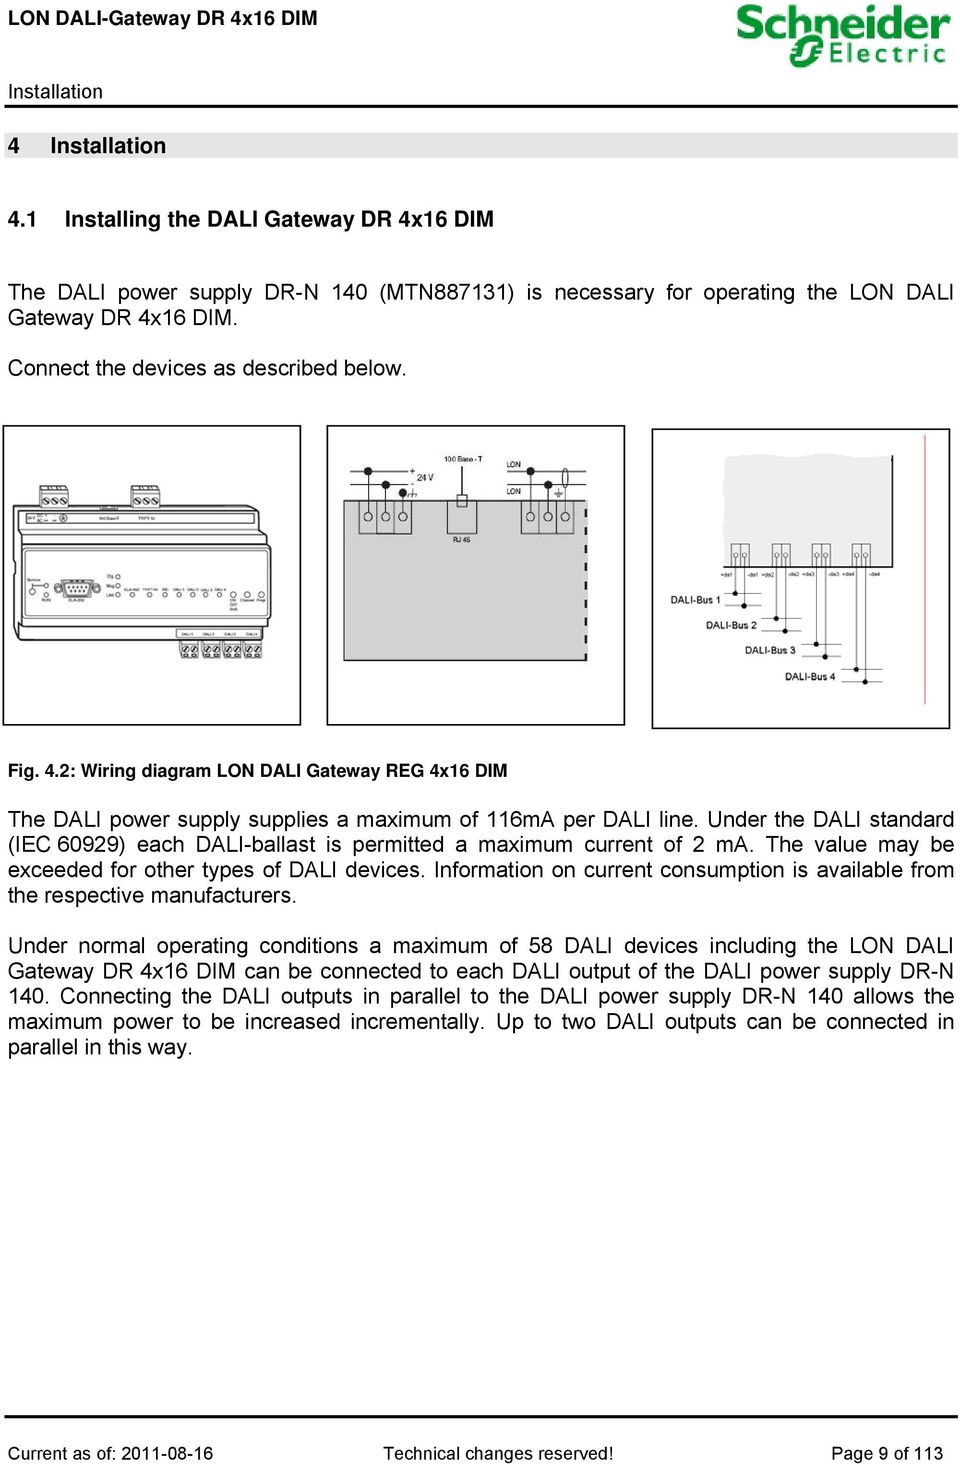 User Manual Lon Dali Gateway Dr 4x16 Dim Mtn Pdf Wiring Diagram Under The Standard Iec 60929 Each Ballast Is Permitted A Maximum